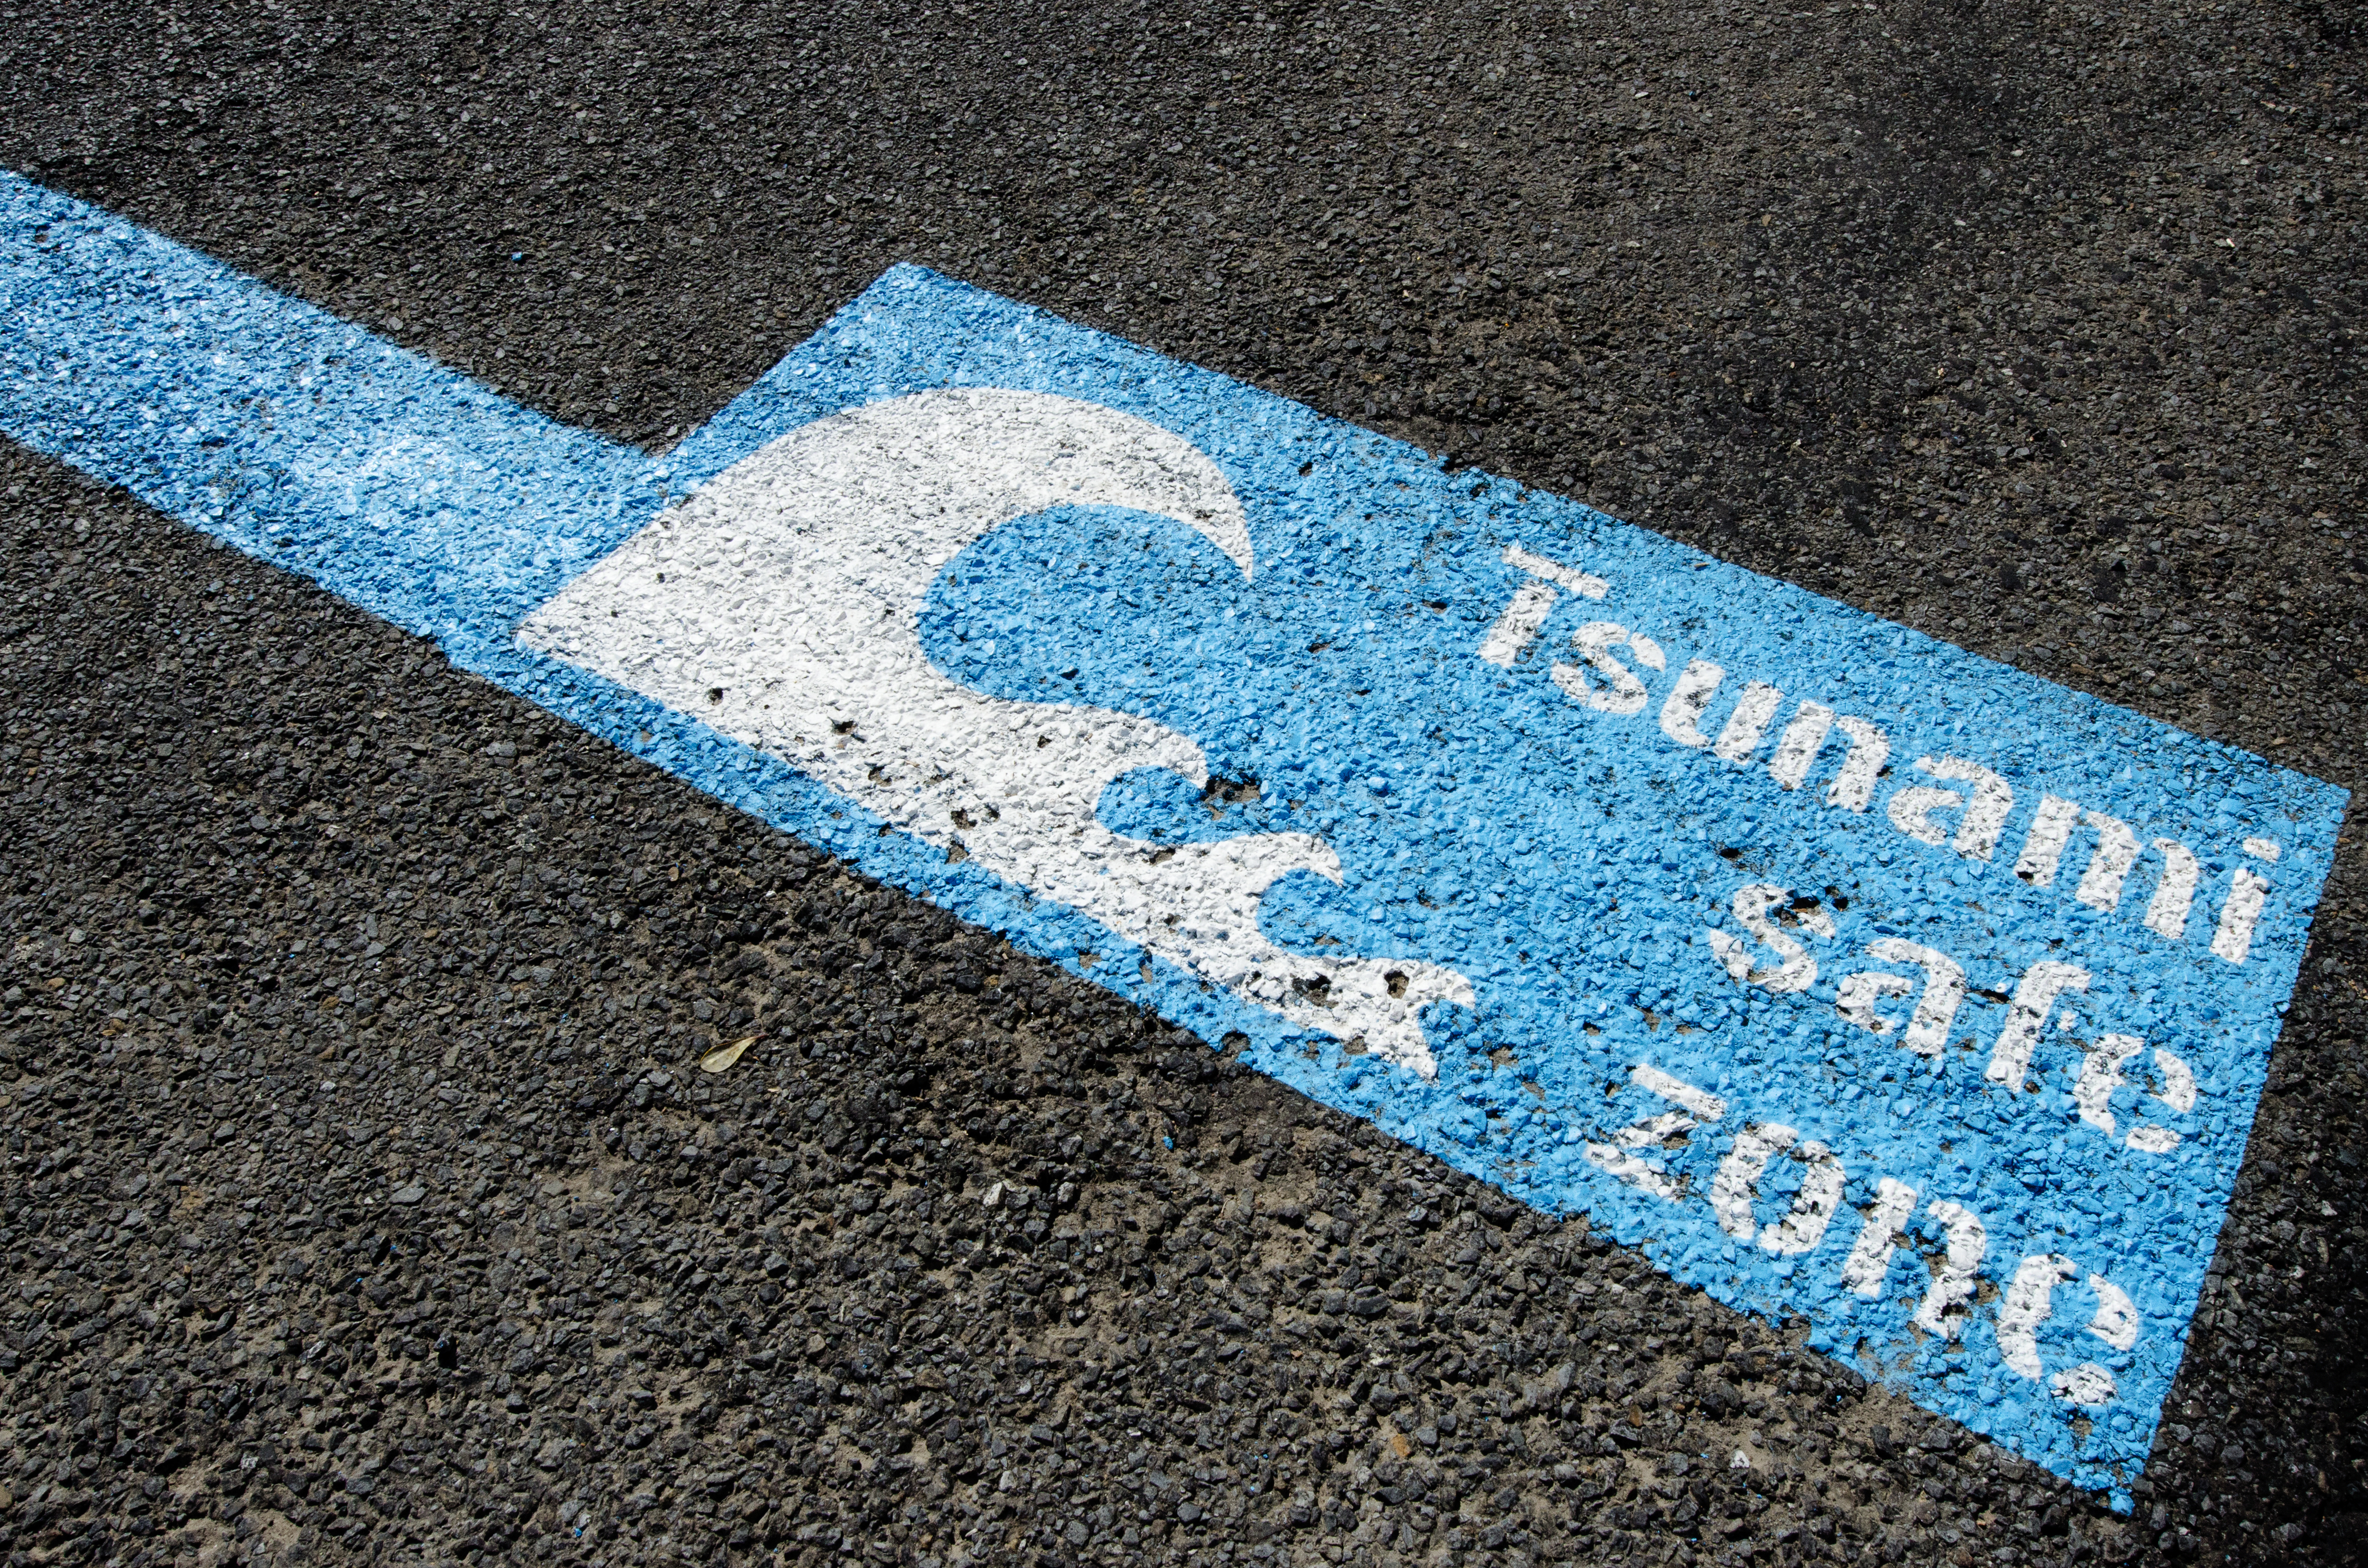 Tsunami safe zone marked on the streets of Wellington city, New Zealand.